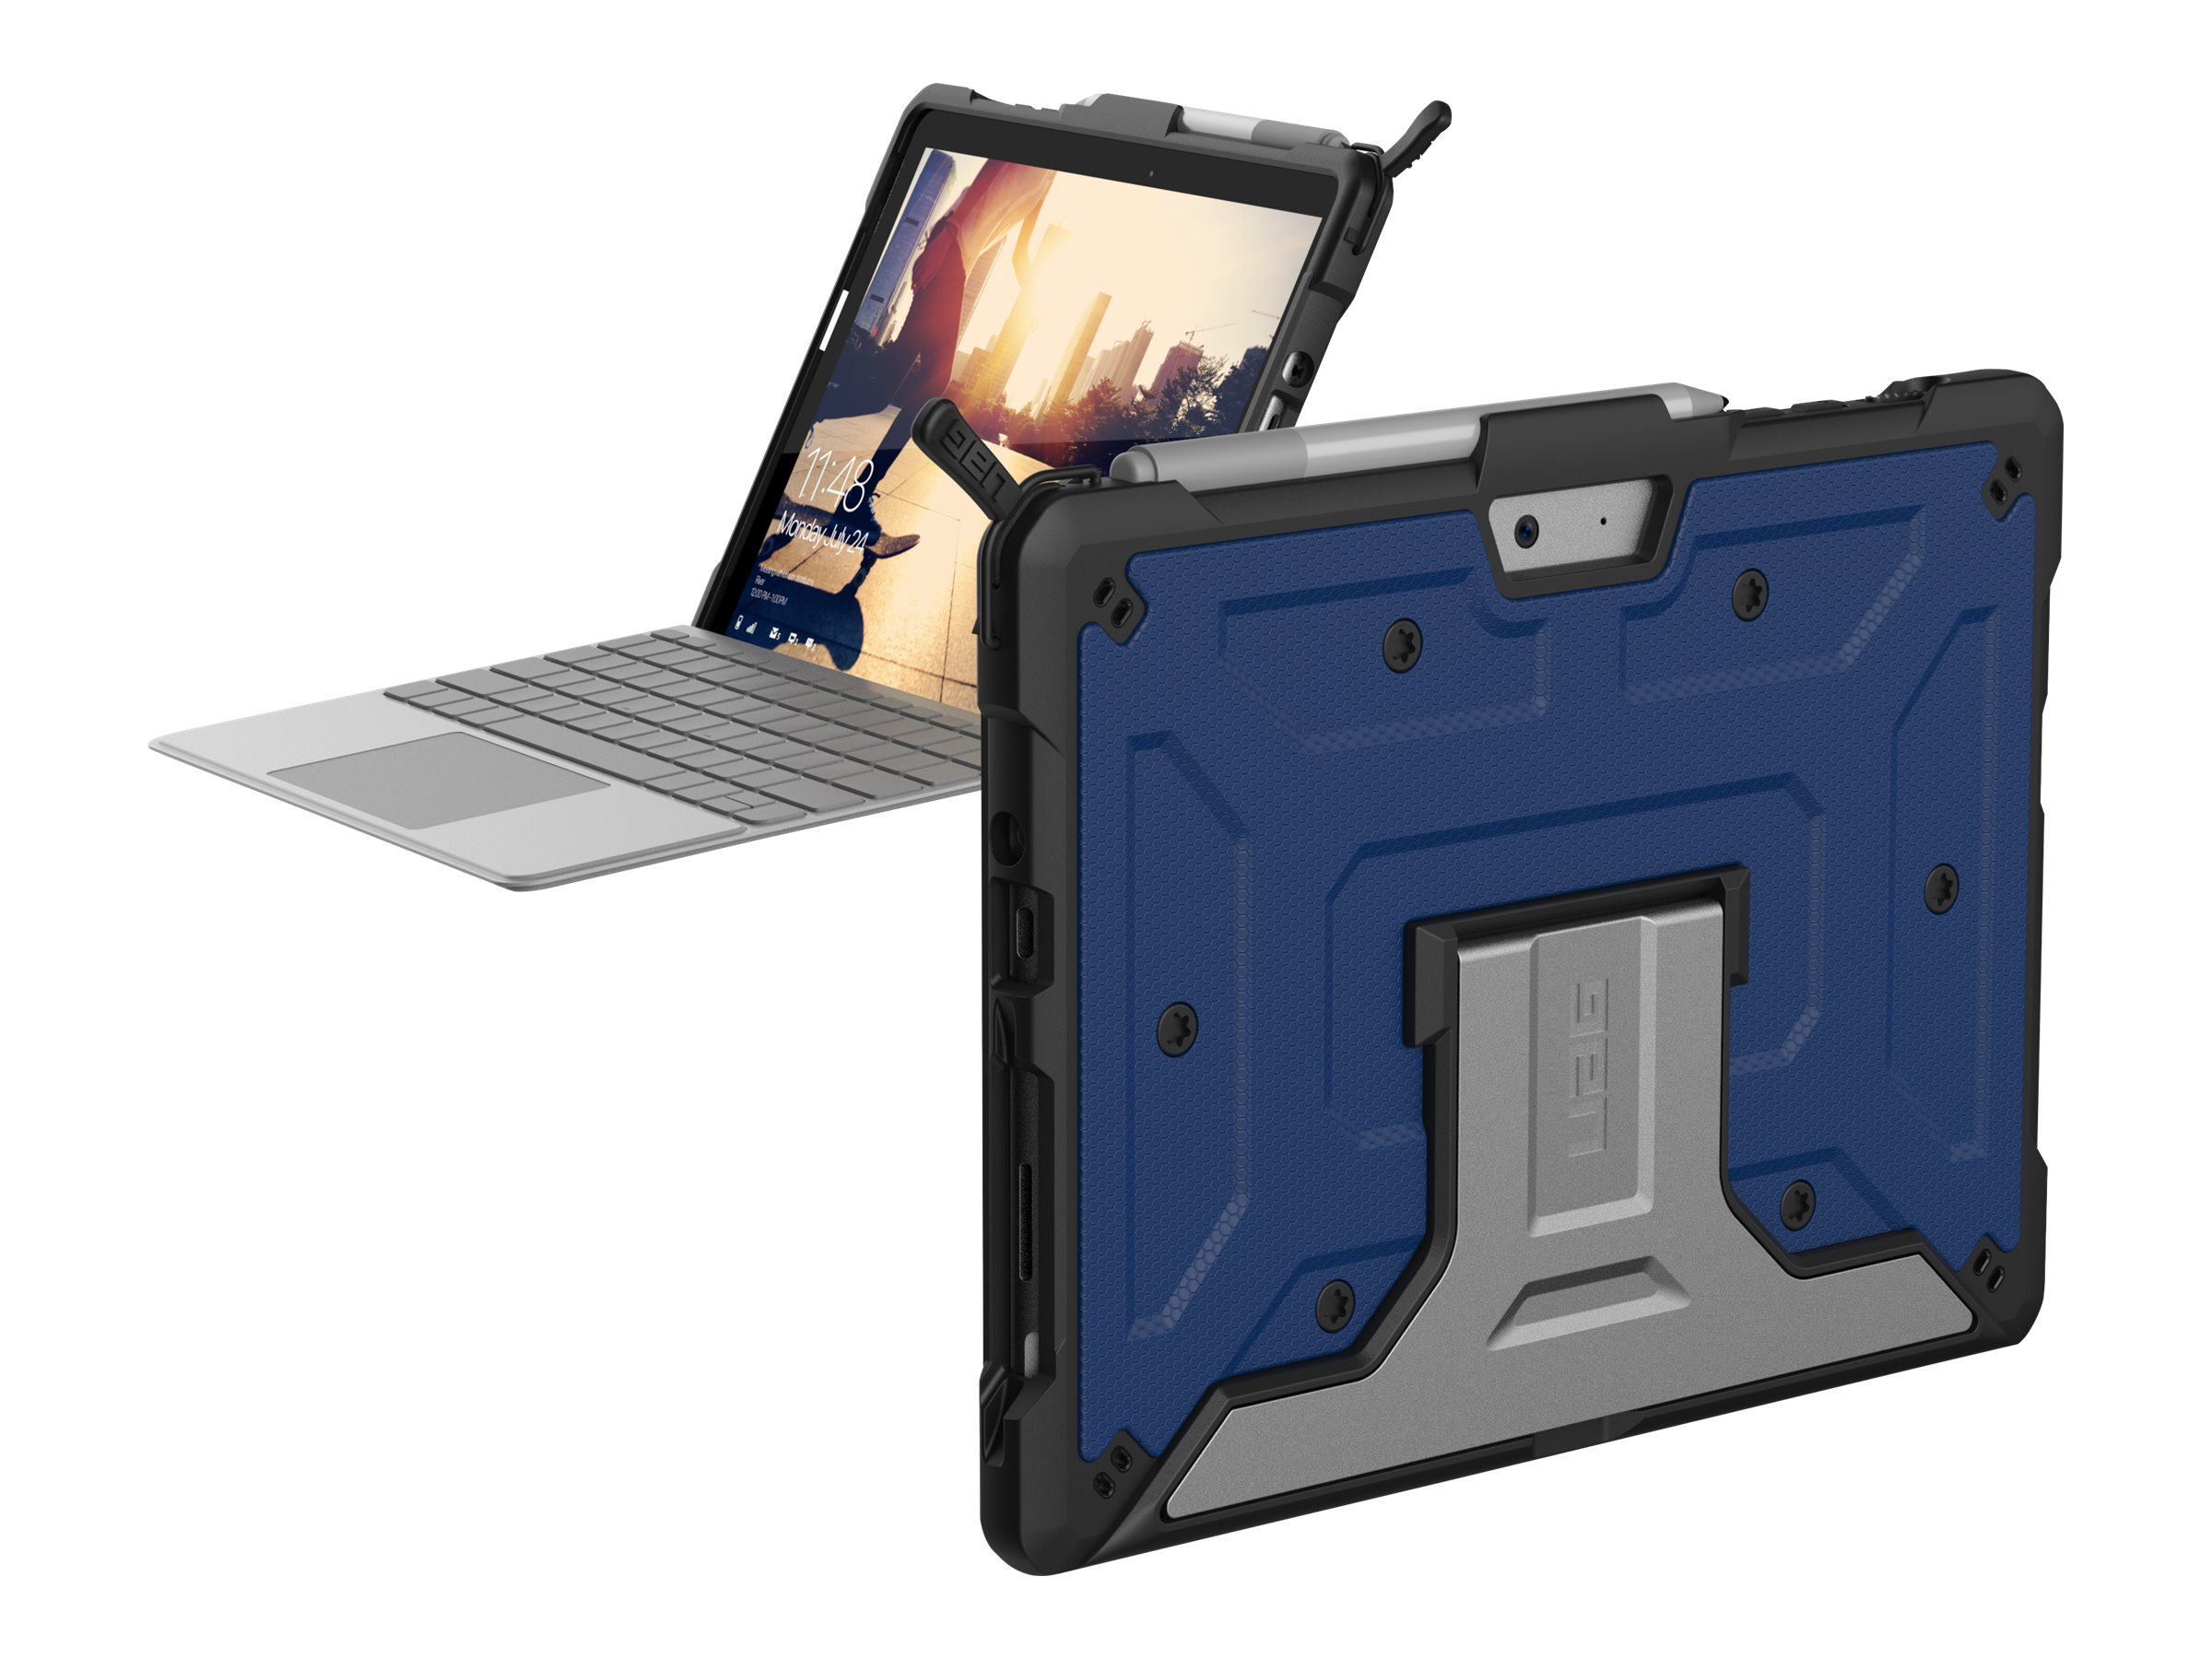 UAG Rugged Case for Microsoft Surface Go / Surface Go 2 - Metropolis Cobalt - Hintere Abdeckung für Tablet - widerstandsfähig -